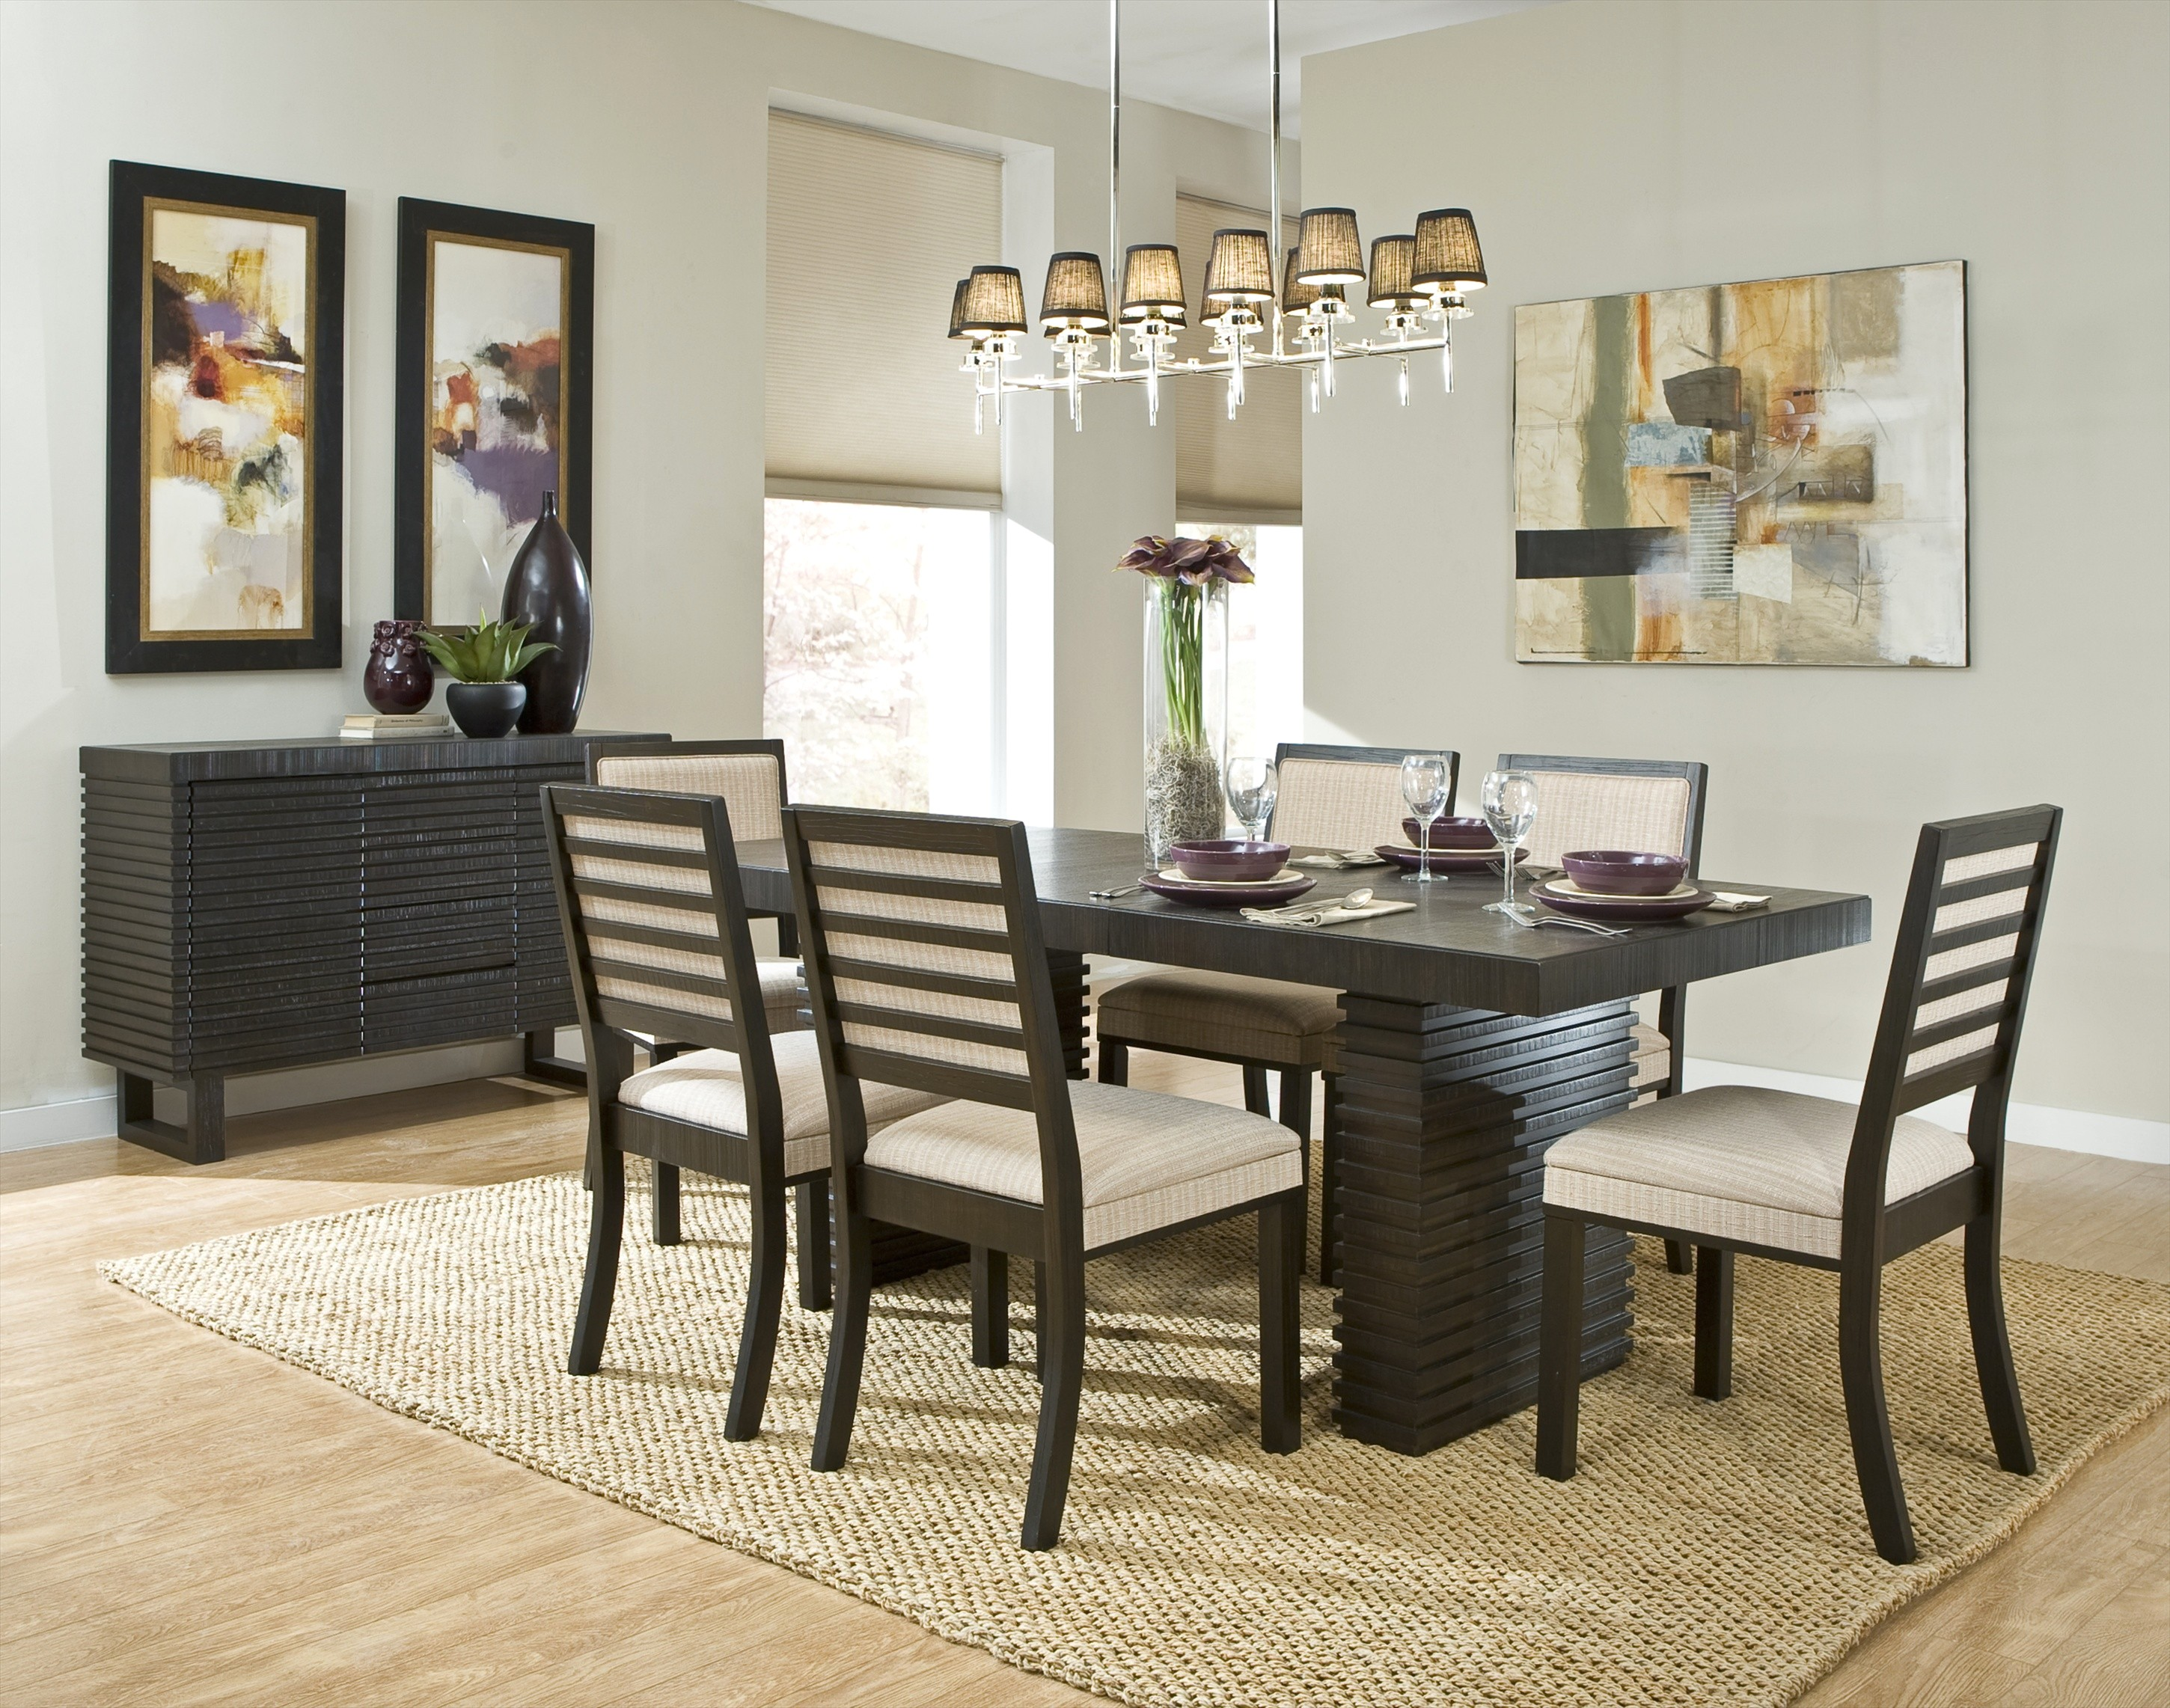 dining room fixtures photo - 1